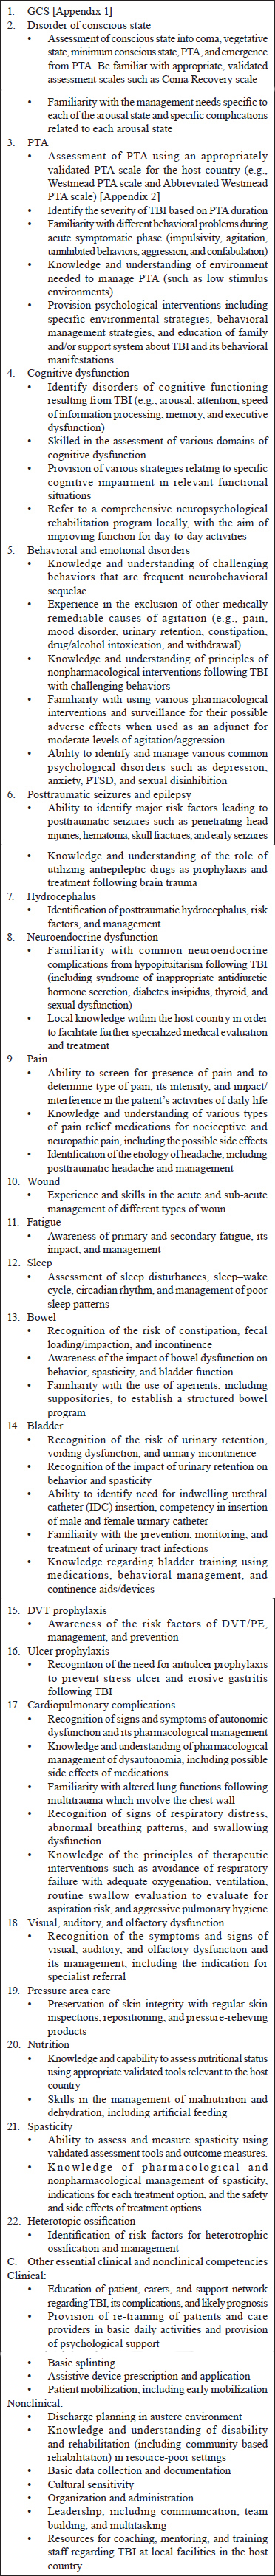 Minimum technical standards and recommendations for traumatic brain